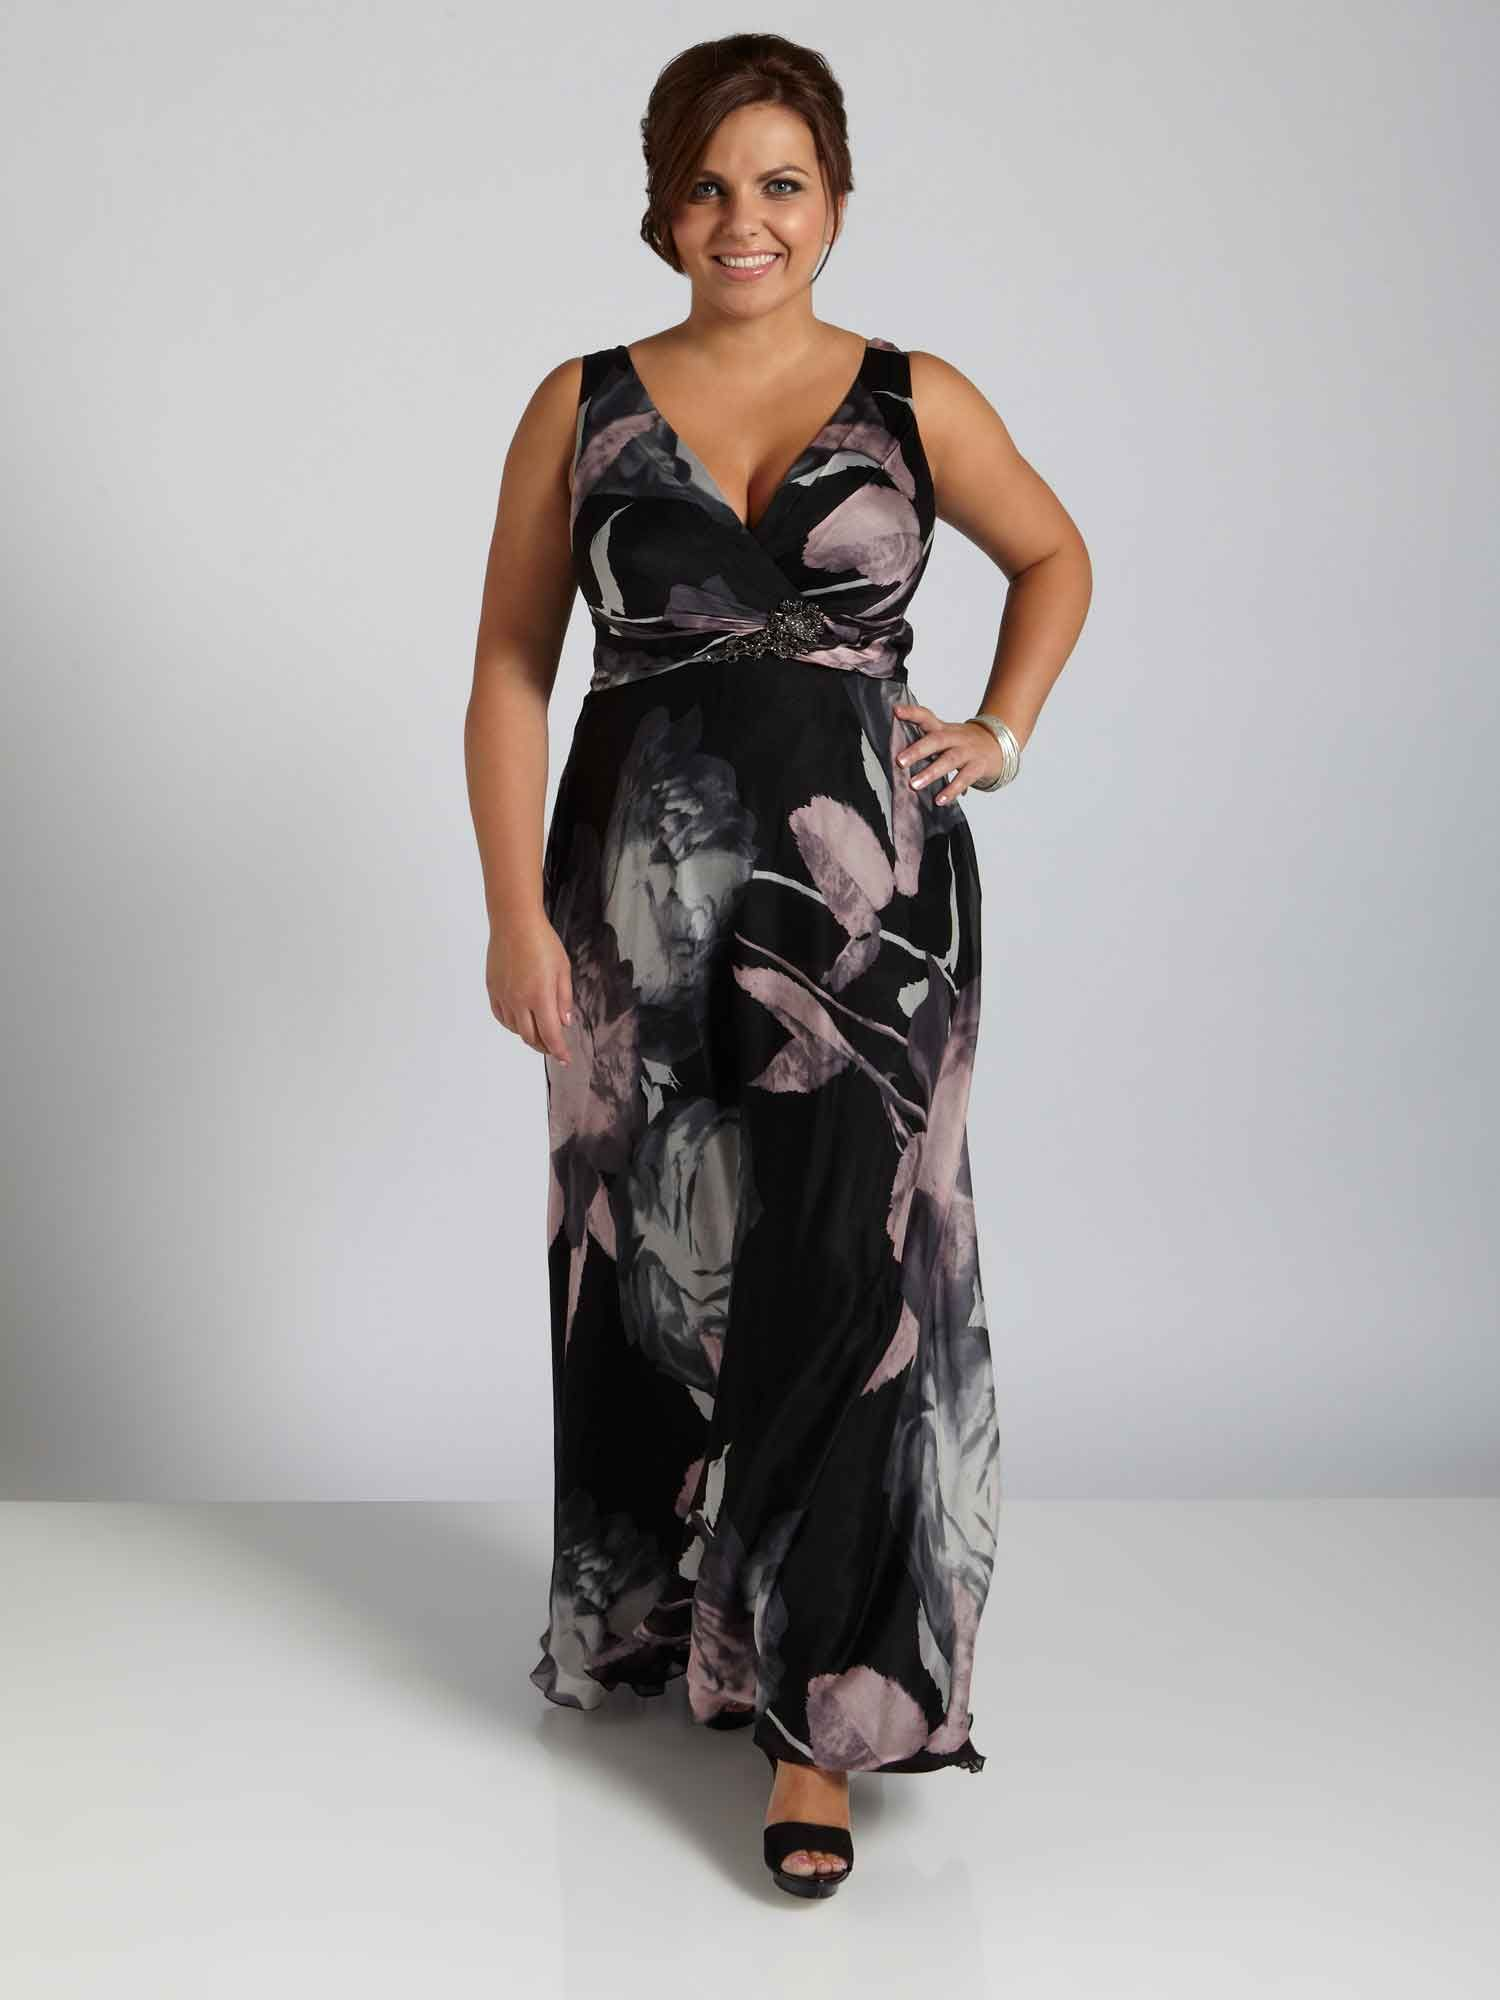 beautiful dress would look great with a shawl or pashmina for